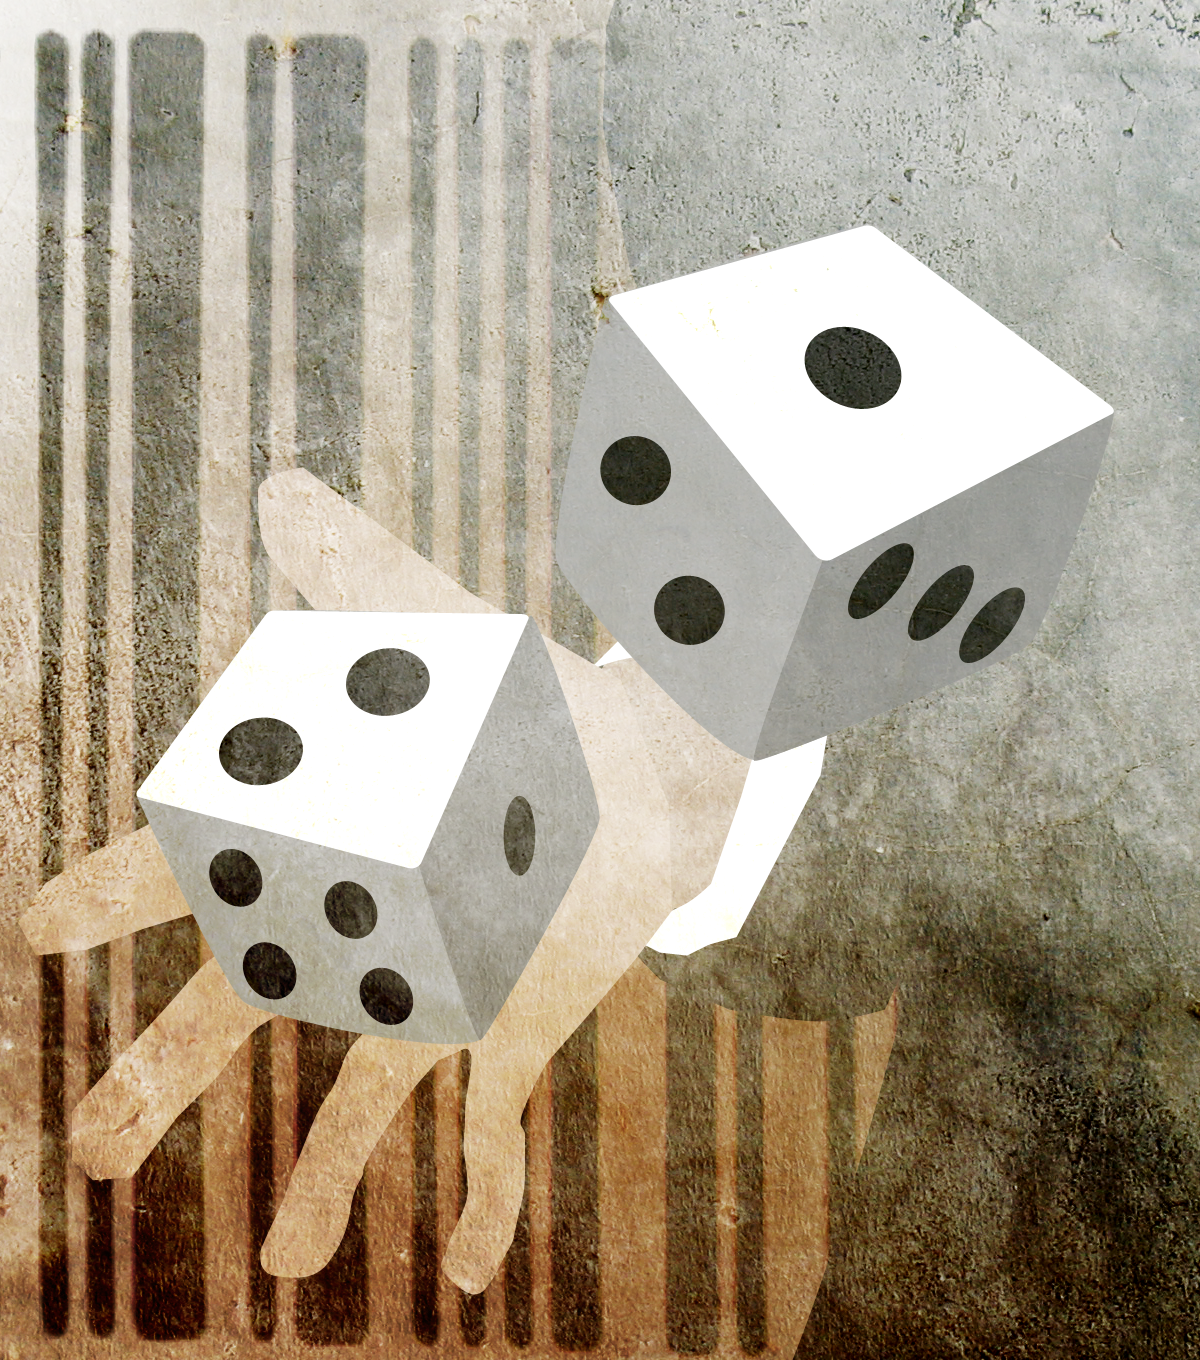 two dice being rolled